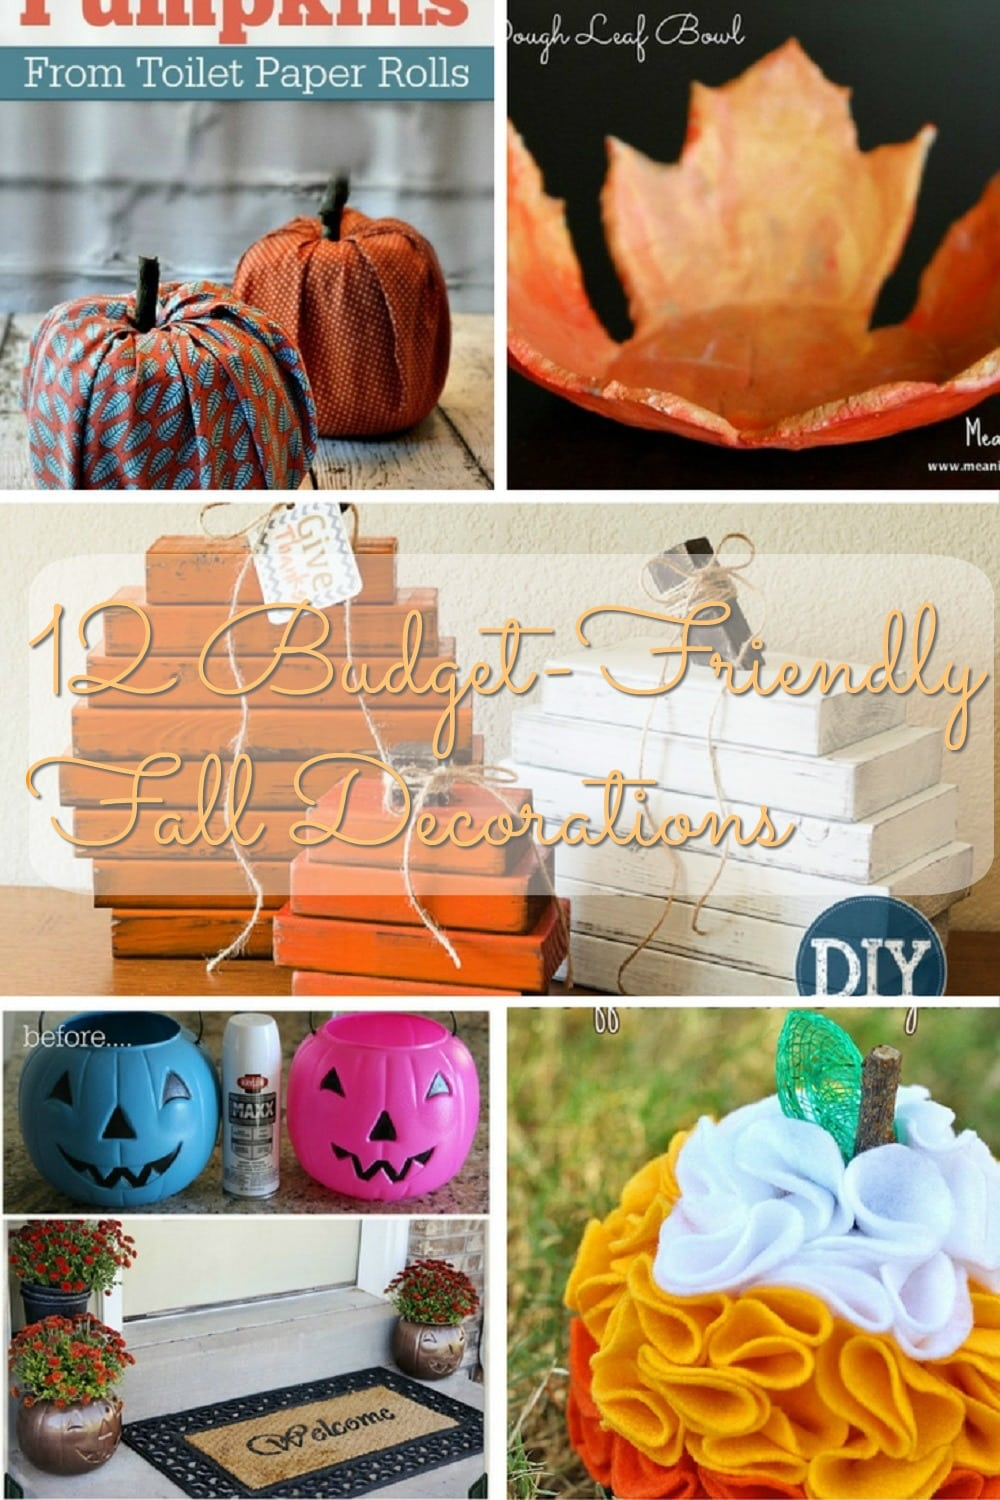 12 Budget Friendly Fall Decorations